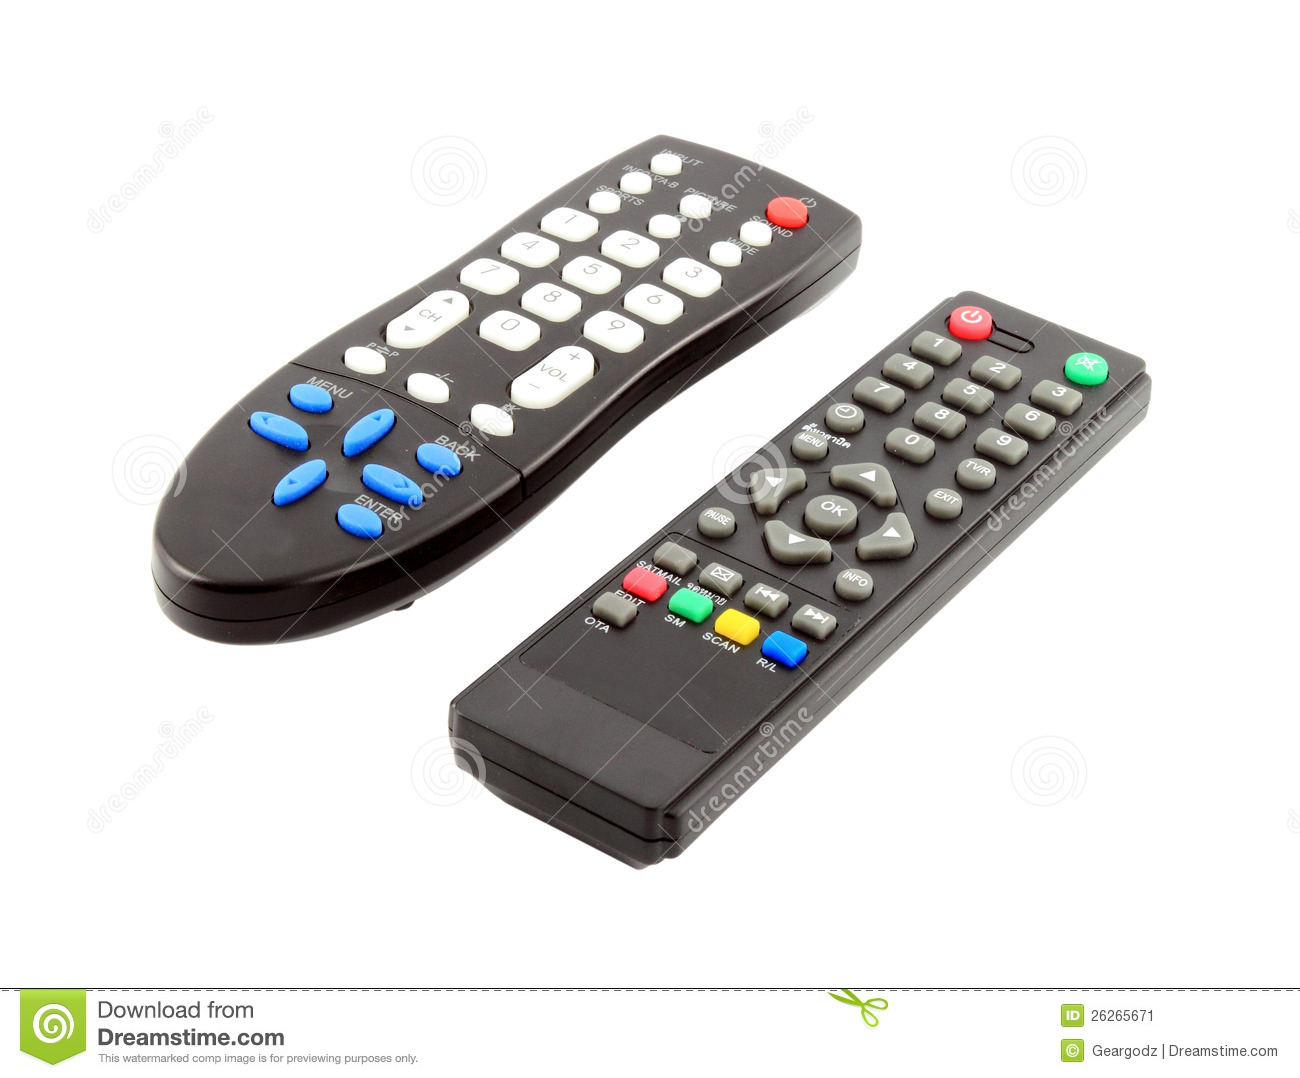 Similiar TV Remote Graphics Keywords